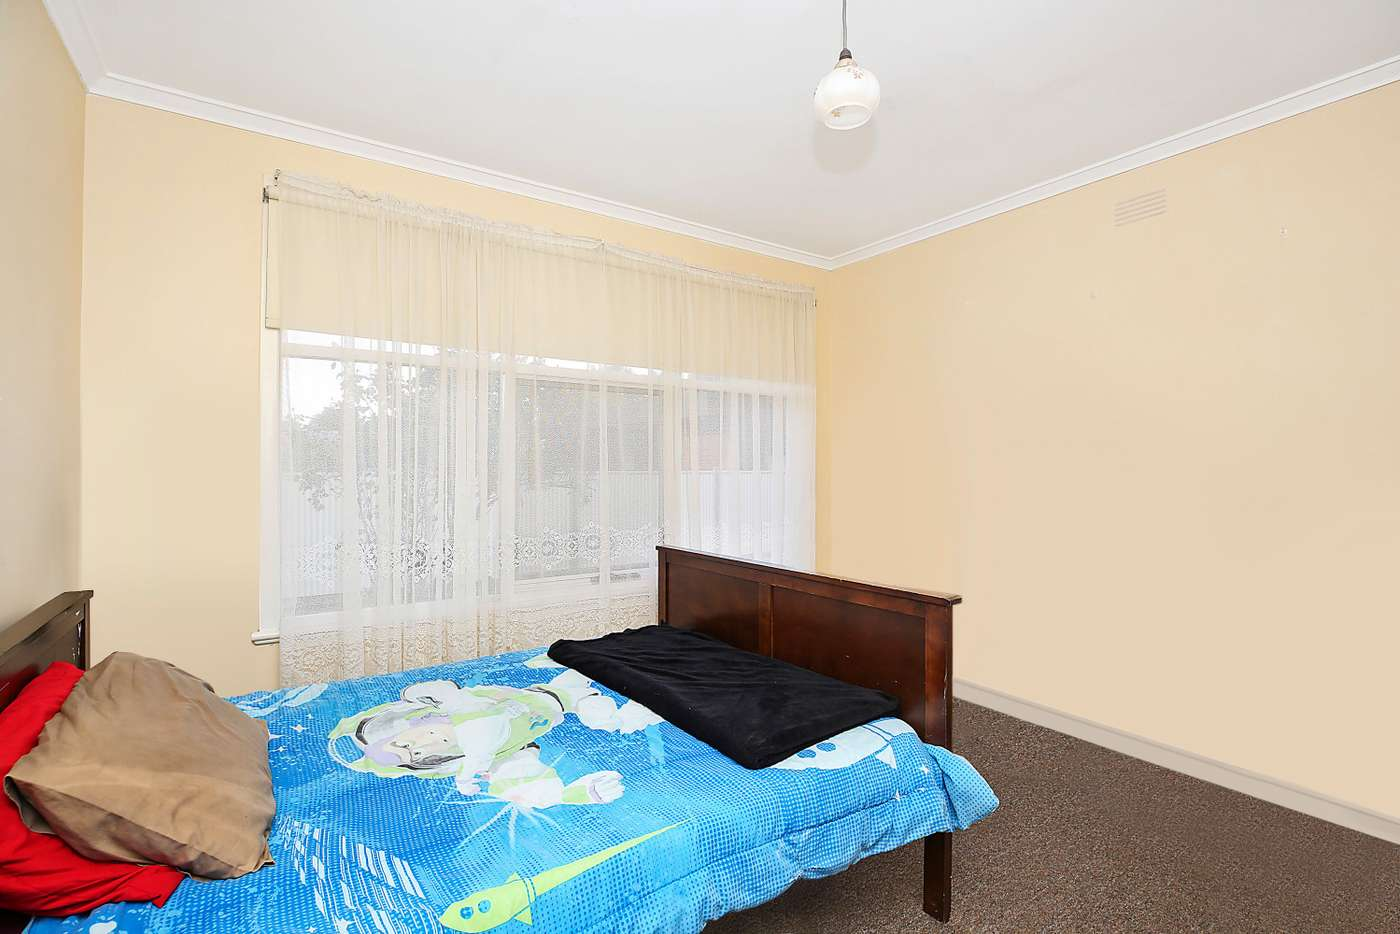 Sixth view of Homely house listing, 27 Manifold Street, Camperdown VIC 3260